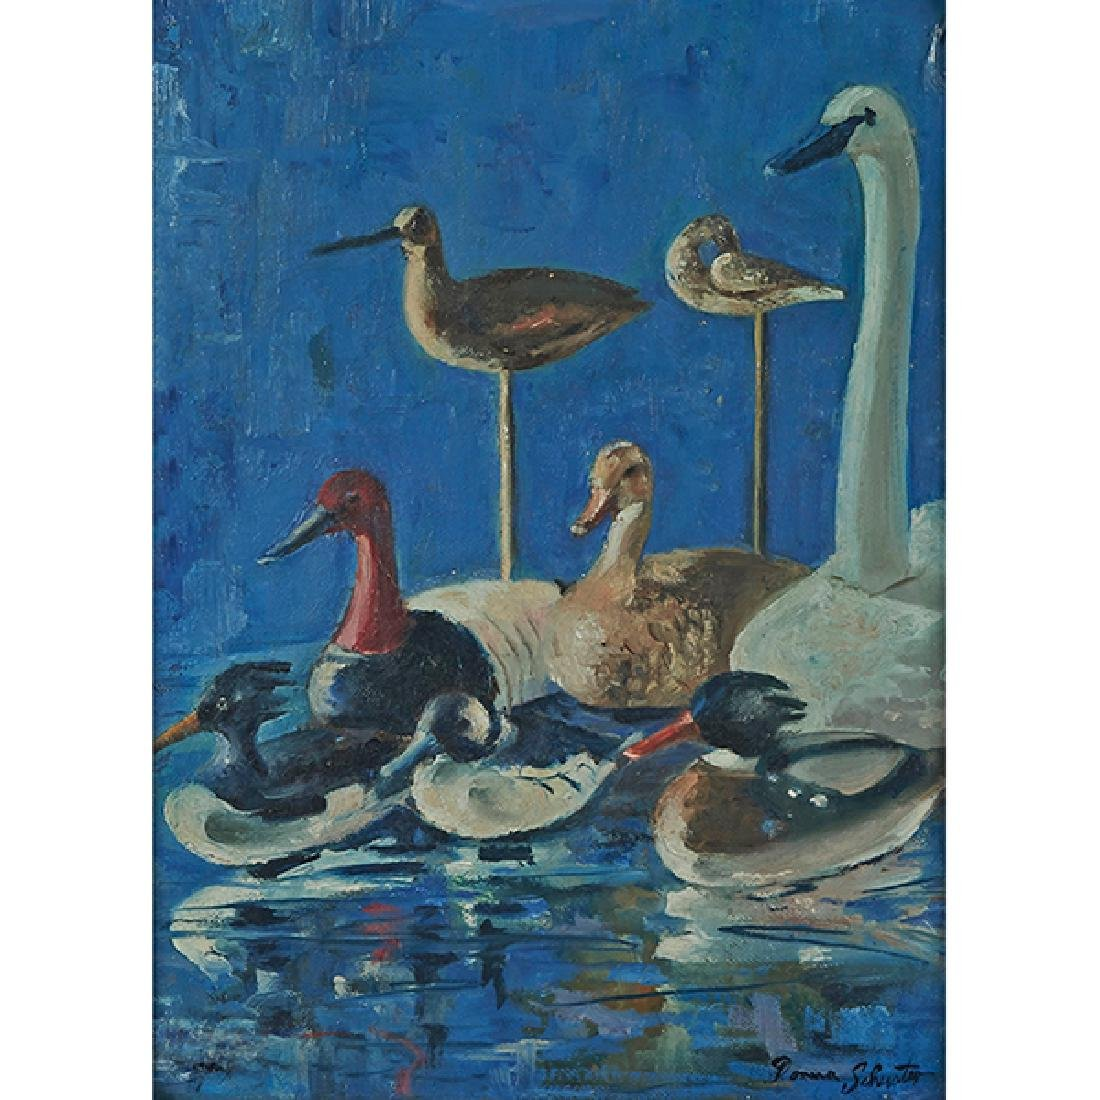 Donna Schuster, (American, 1883-1953), Water Fowl, oil